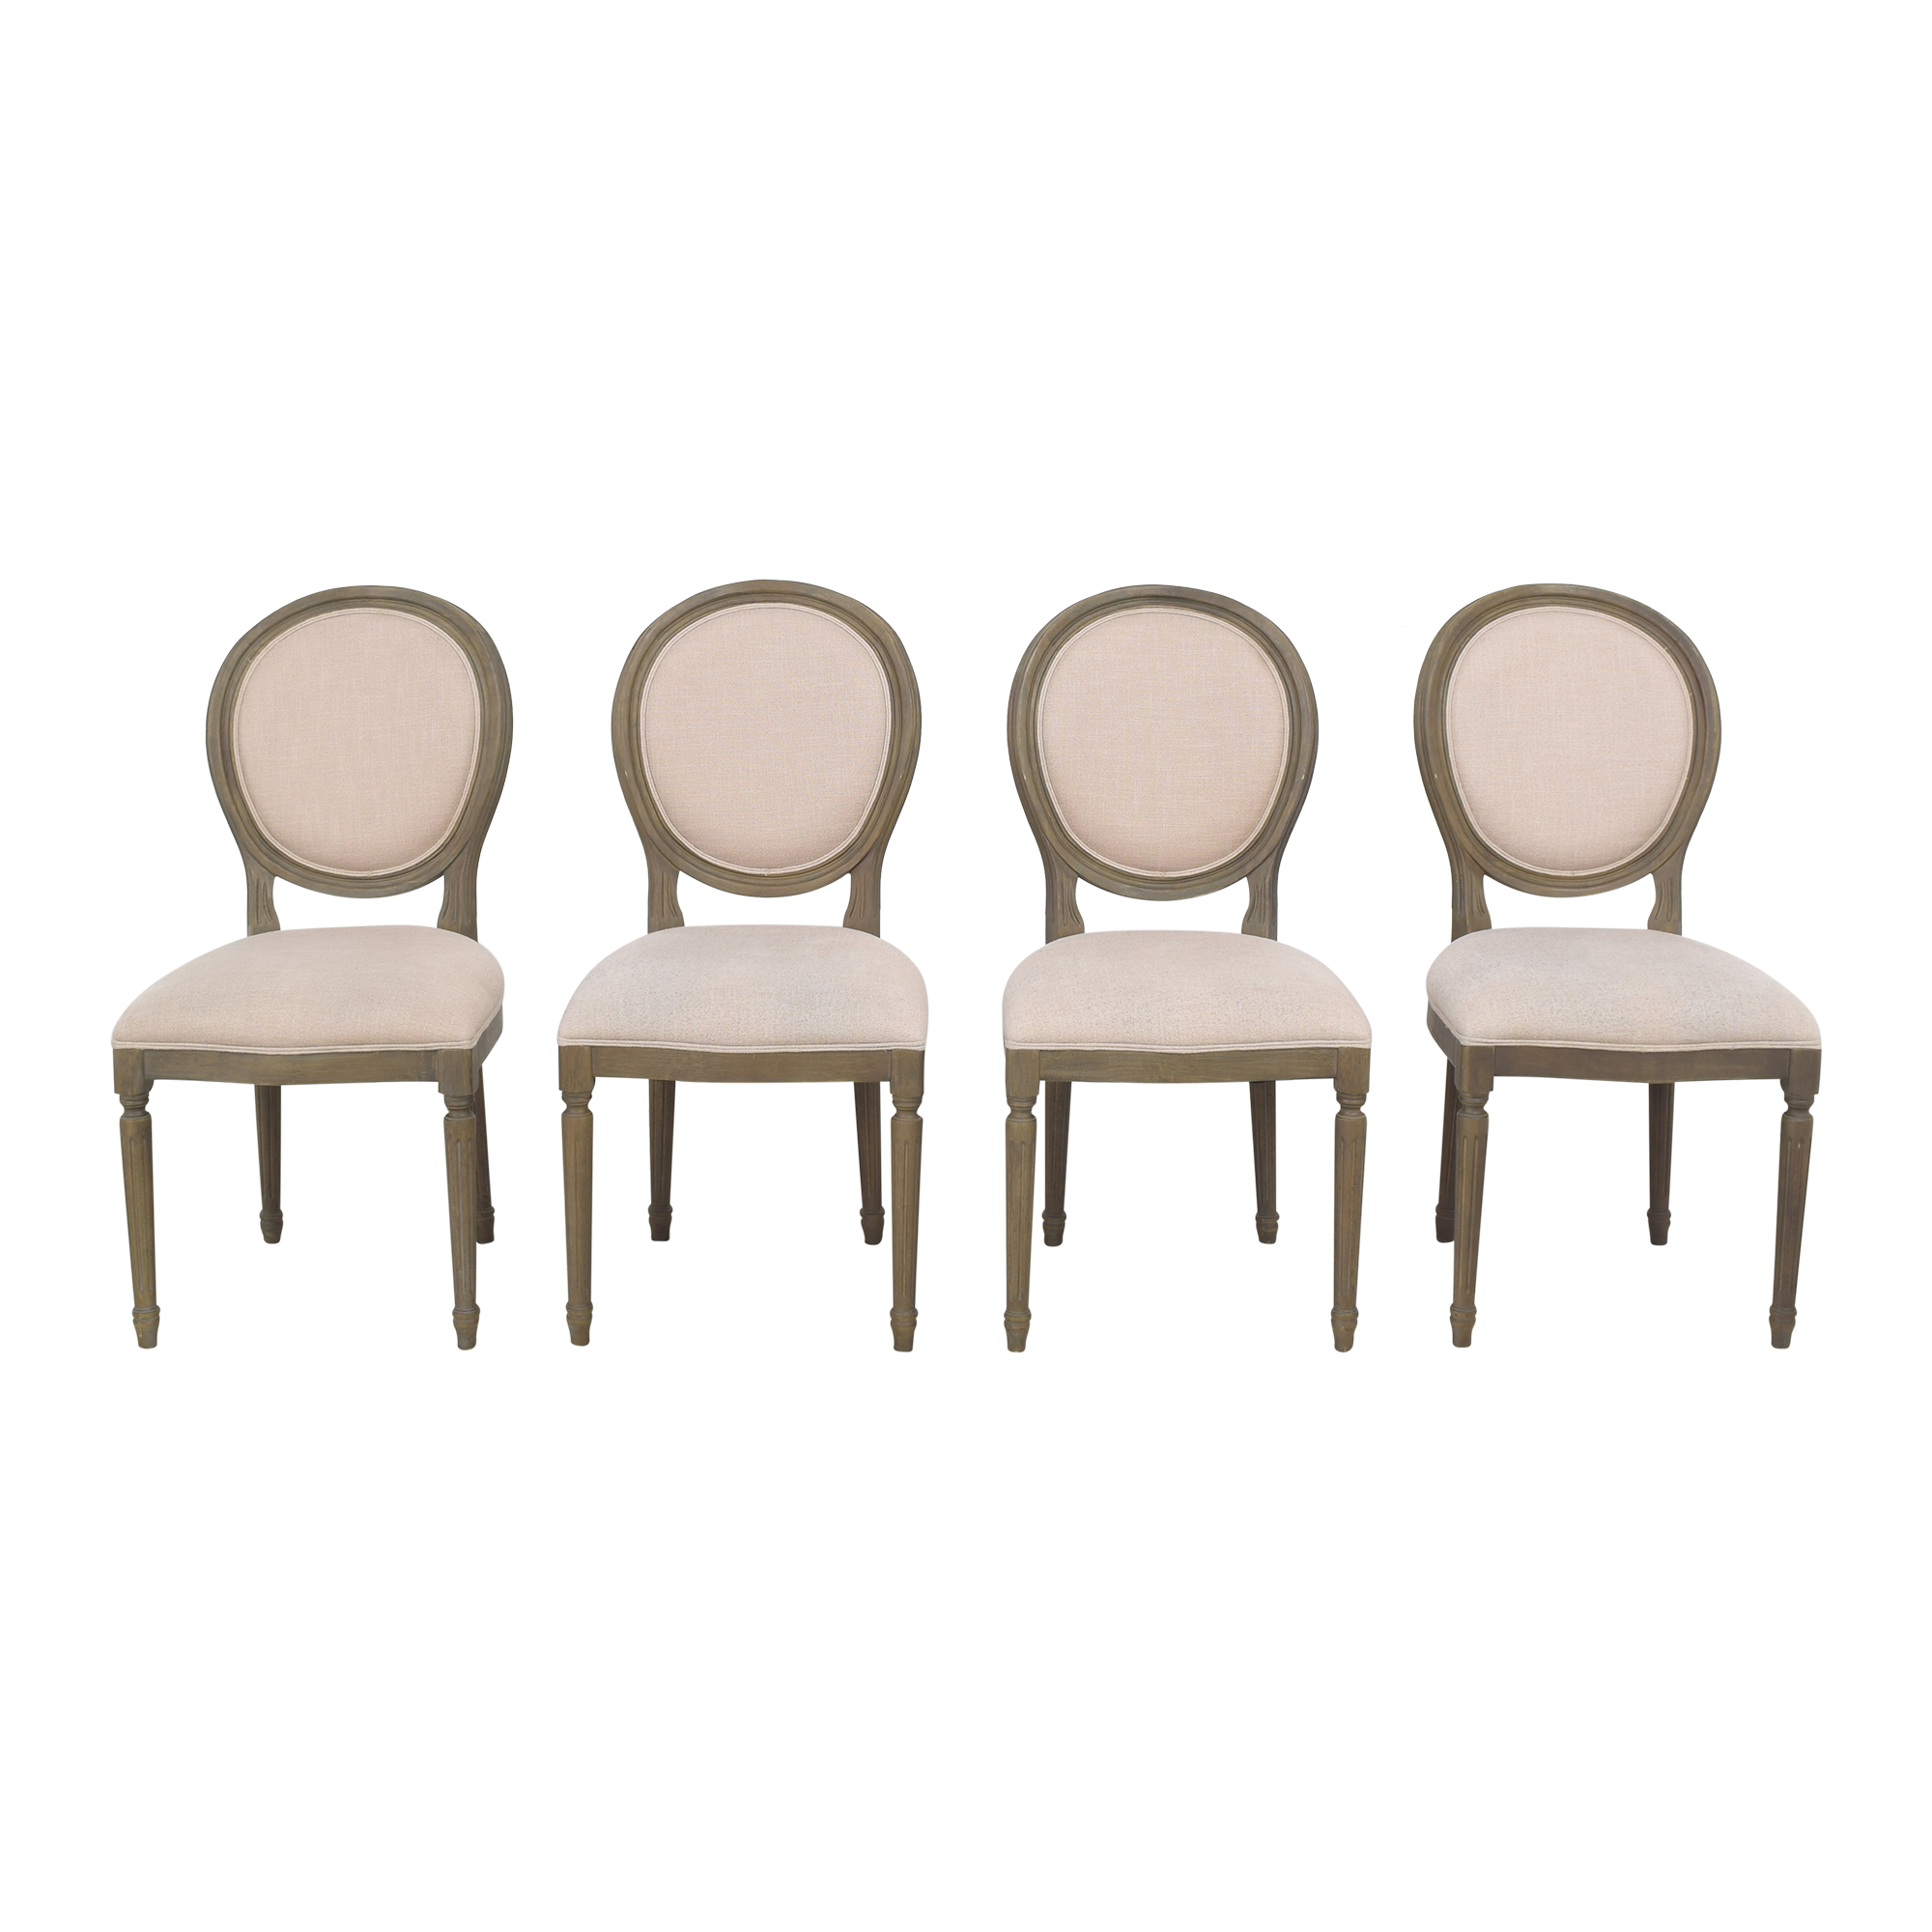 Macy's Macy's Tristan Dining Chairs dimensions